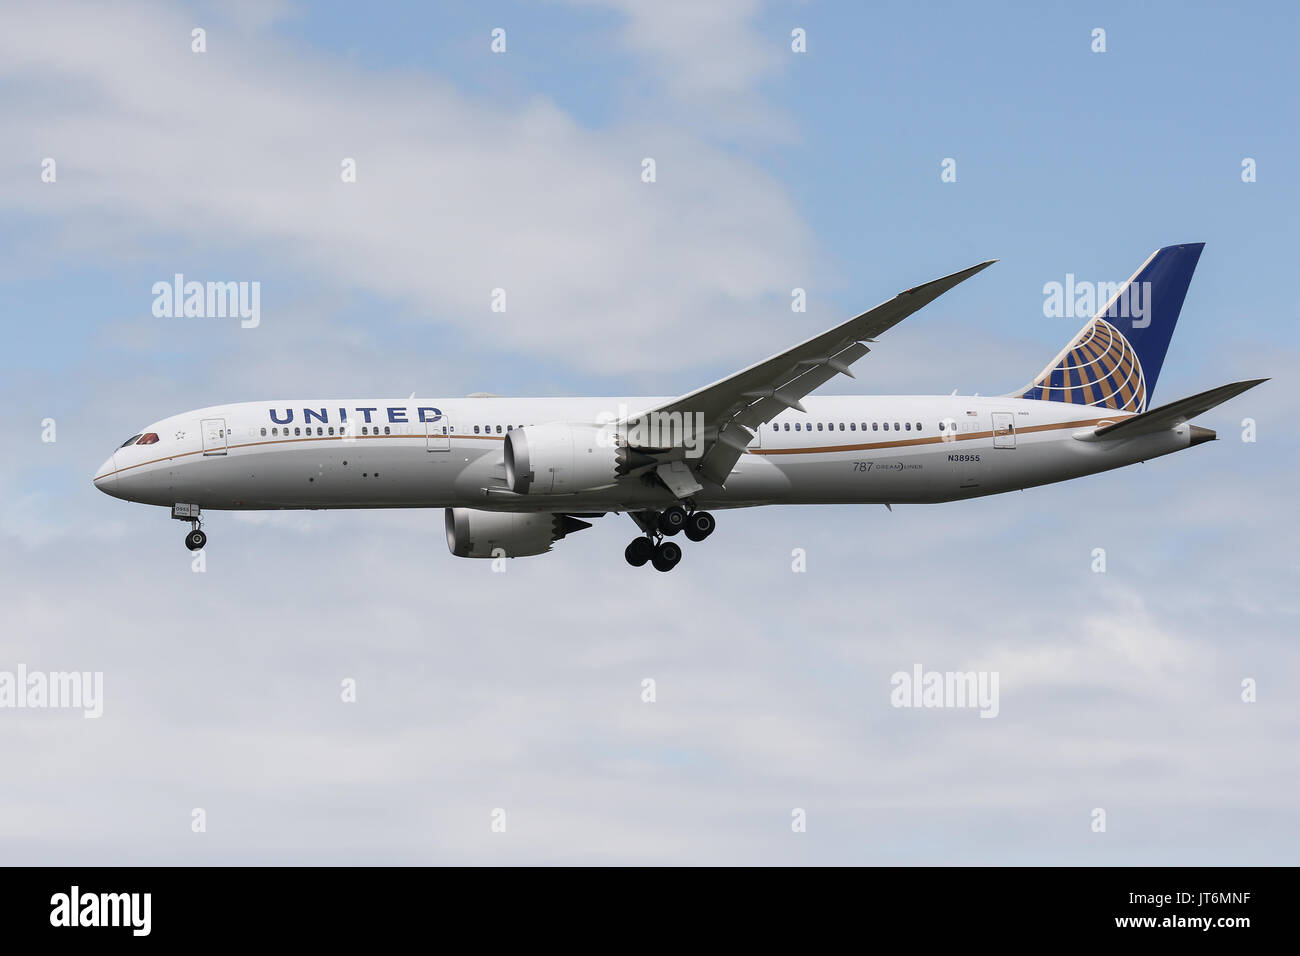 profile of a united airlines c essay I don't know if i ever loved united airlines, but an irrational loyalty—of the kind usually associated with sports franchises—kept me flying the friendly skies with them for much of my adult life it started when i lived in chicago, the main united hub, where i'd slowly grown an affection.